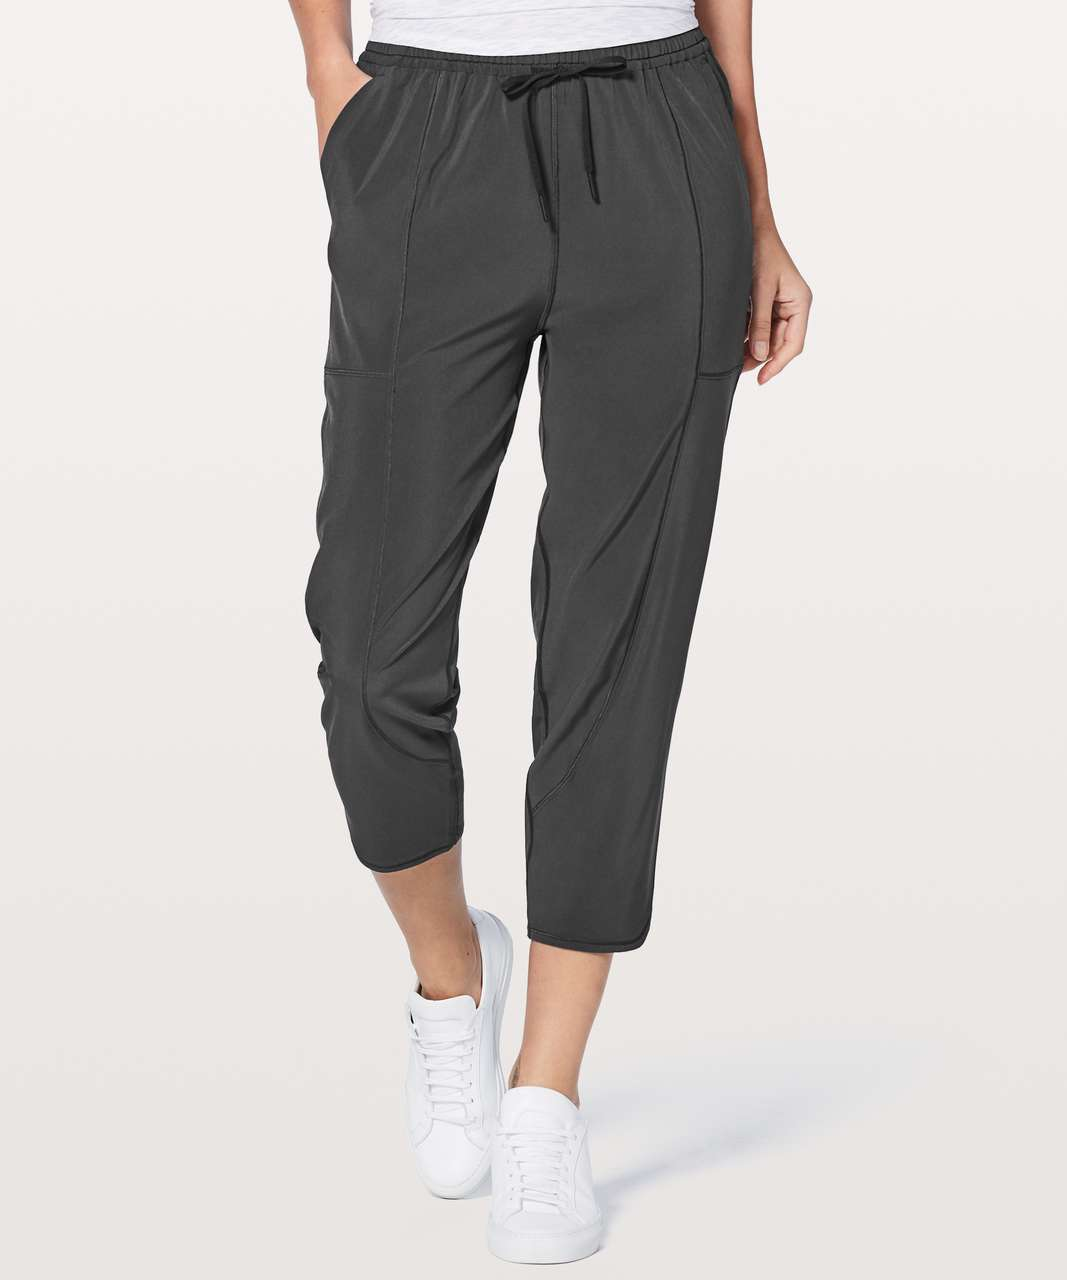 "Lululemon Final Play Crop 23"" - Deep Coal"